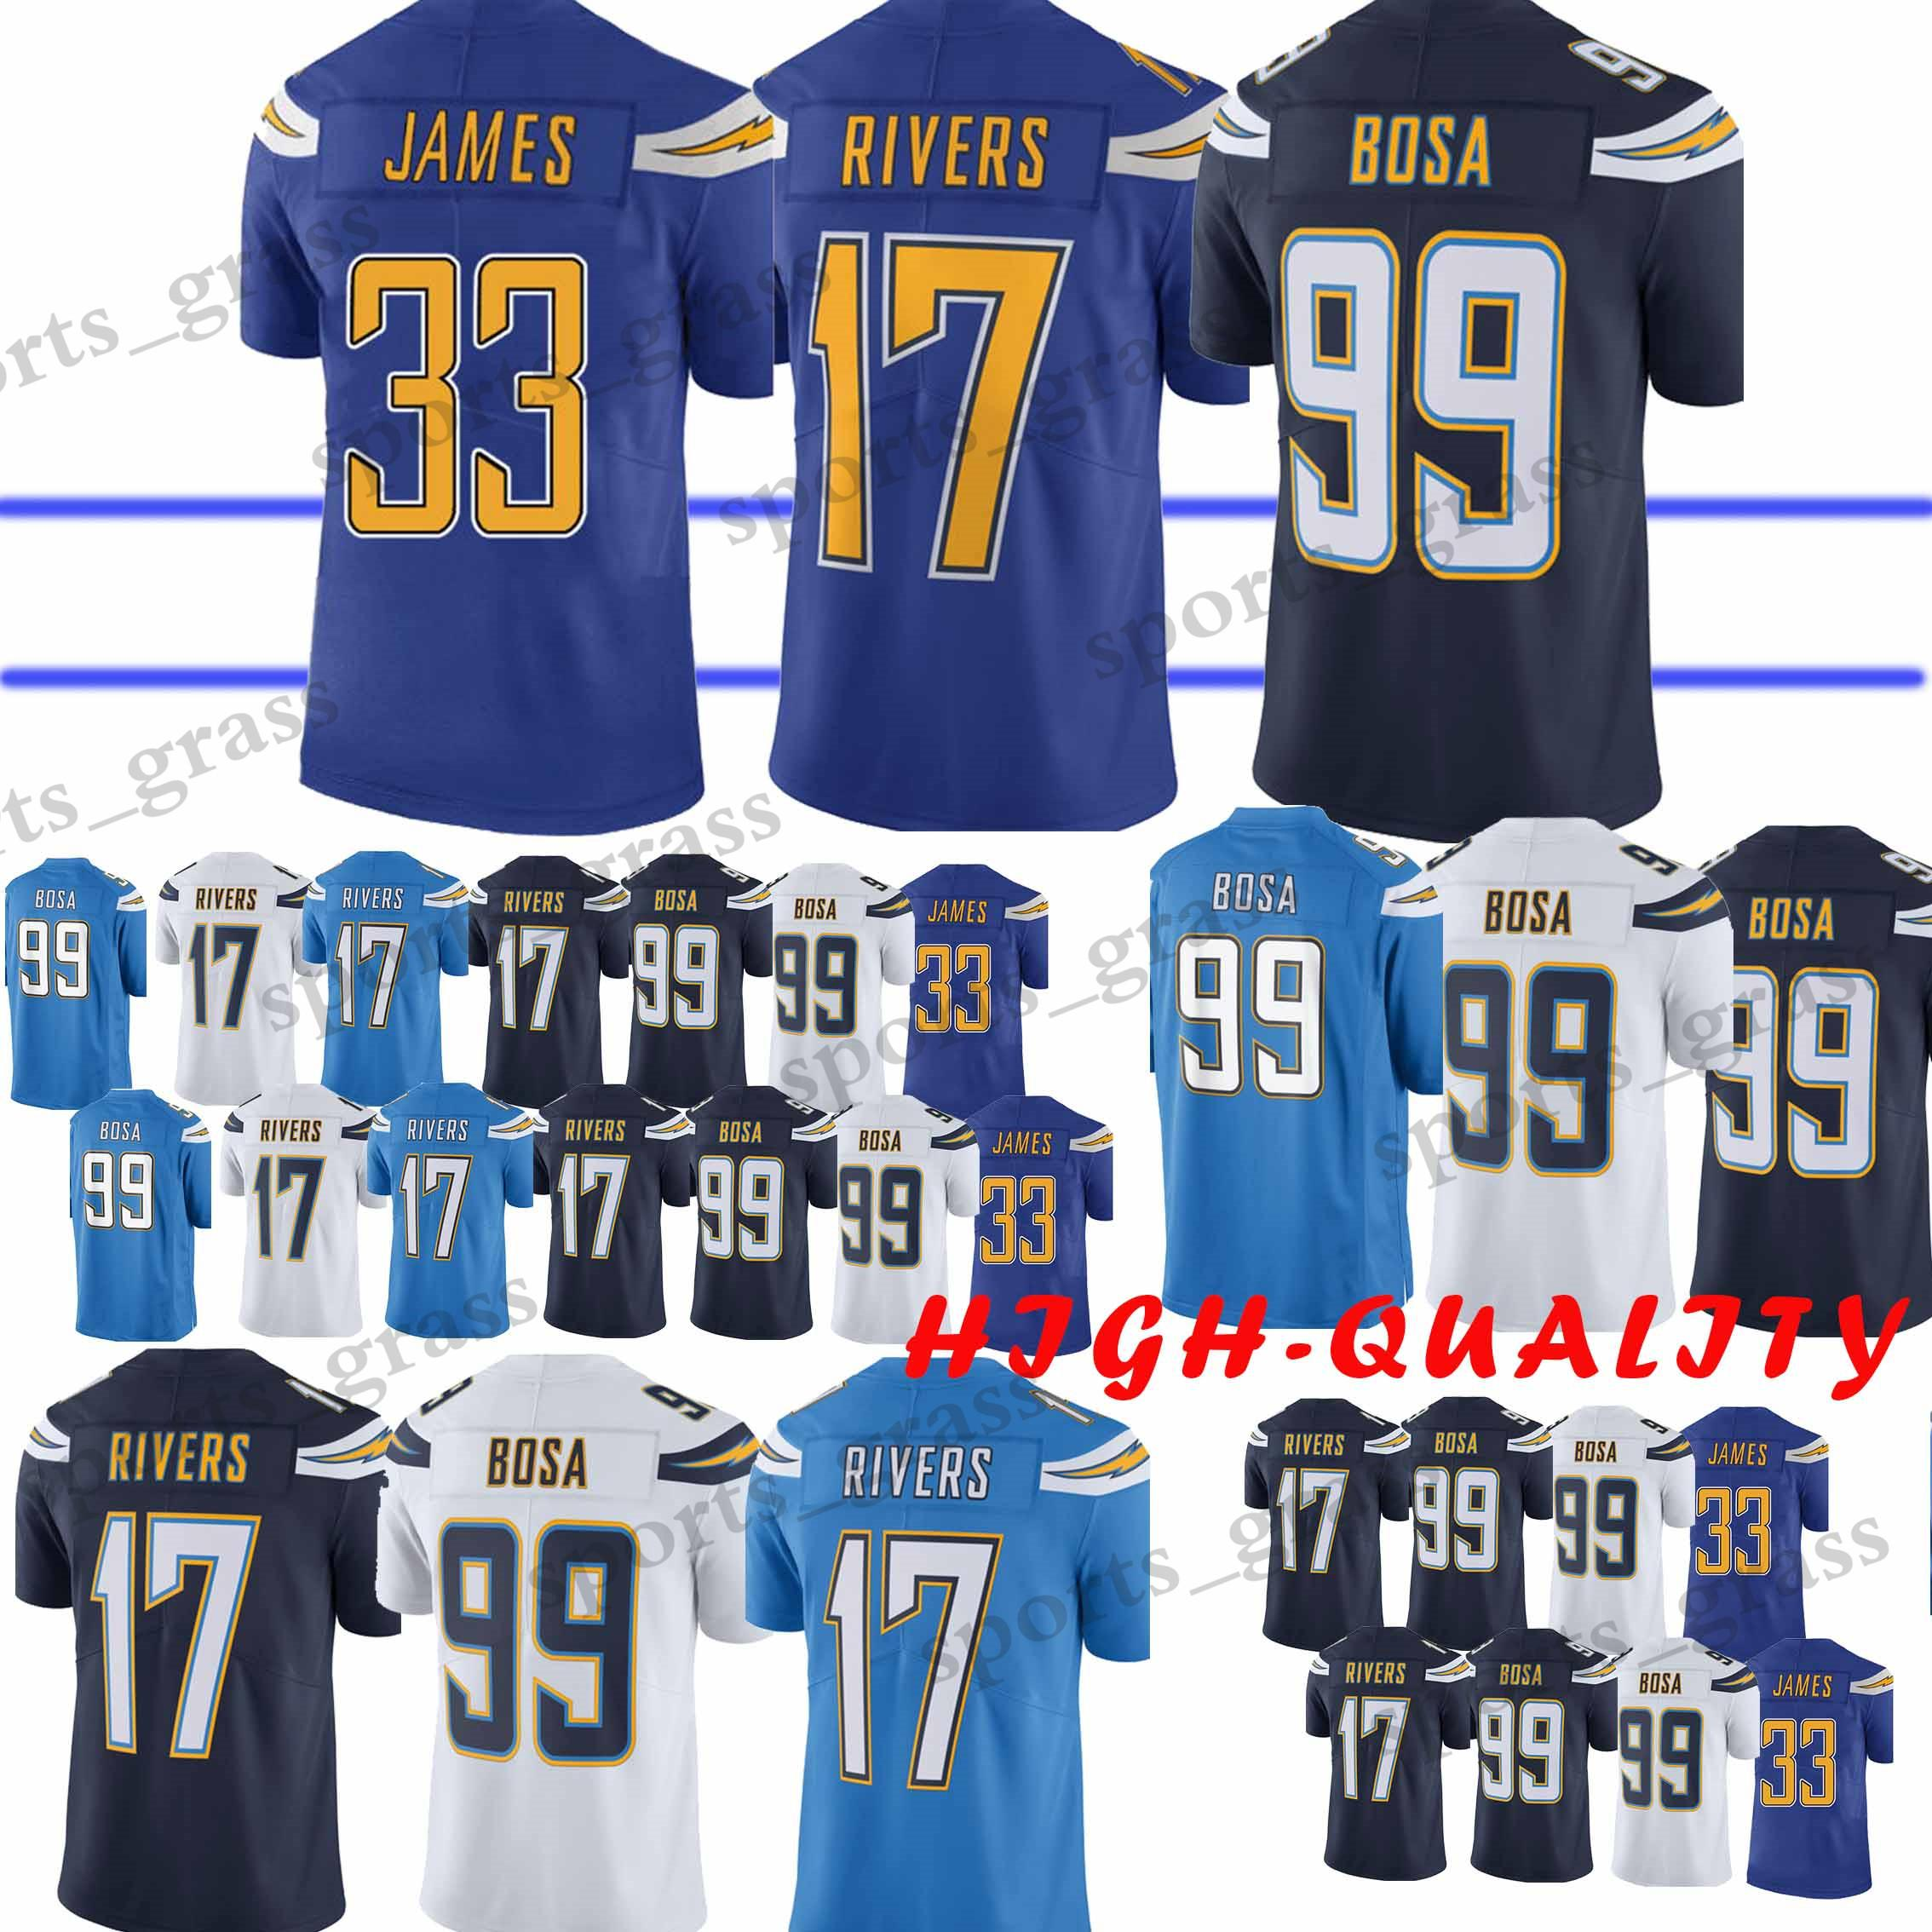 99 joey bosa limited electric blue rush spain 2019 99 joey bosa los angeles  charger jersey 17 philip rivers 33 derwin james top 1ee451c97